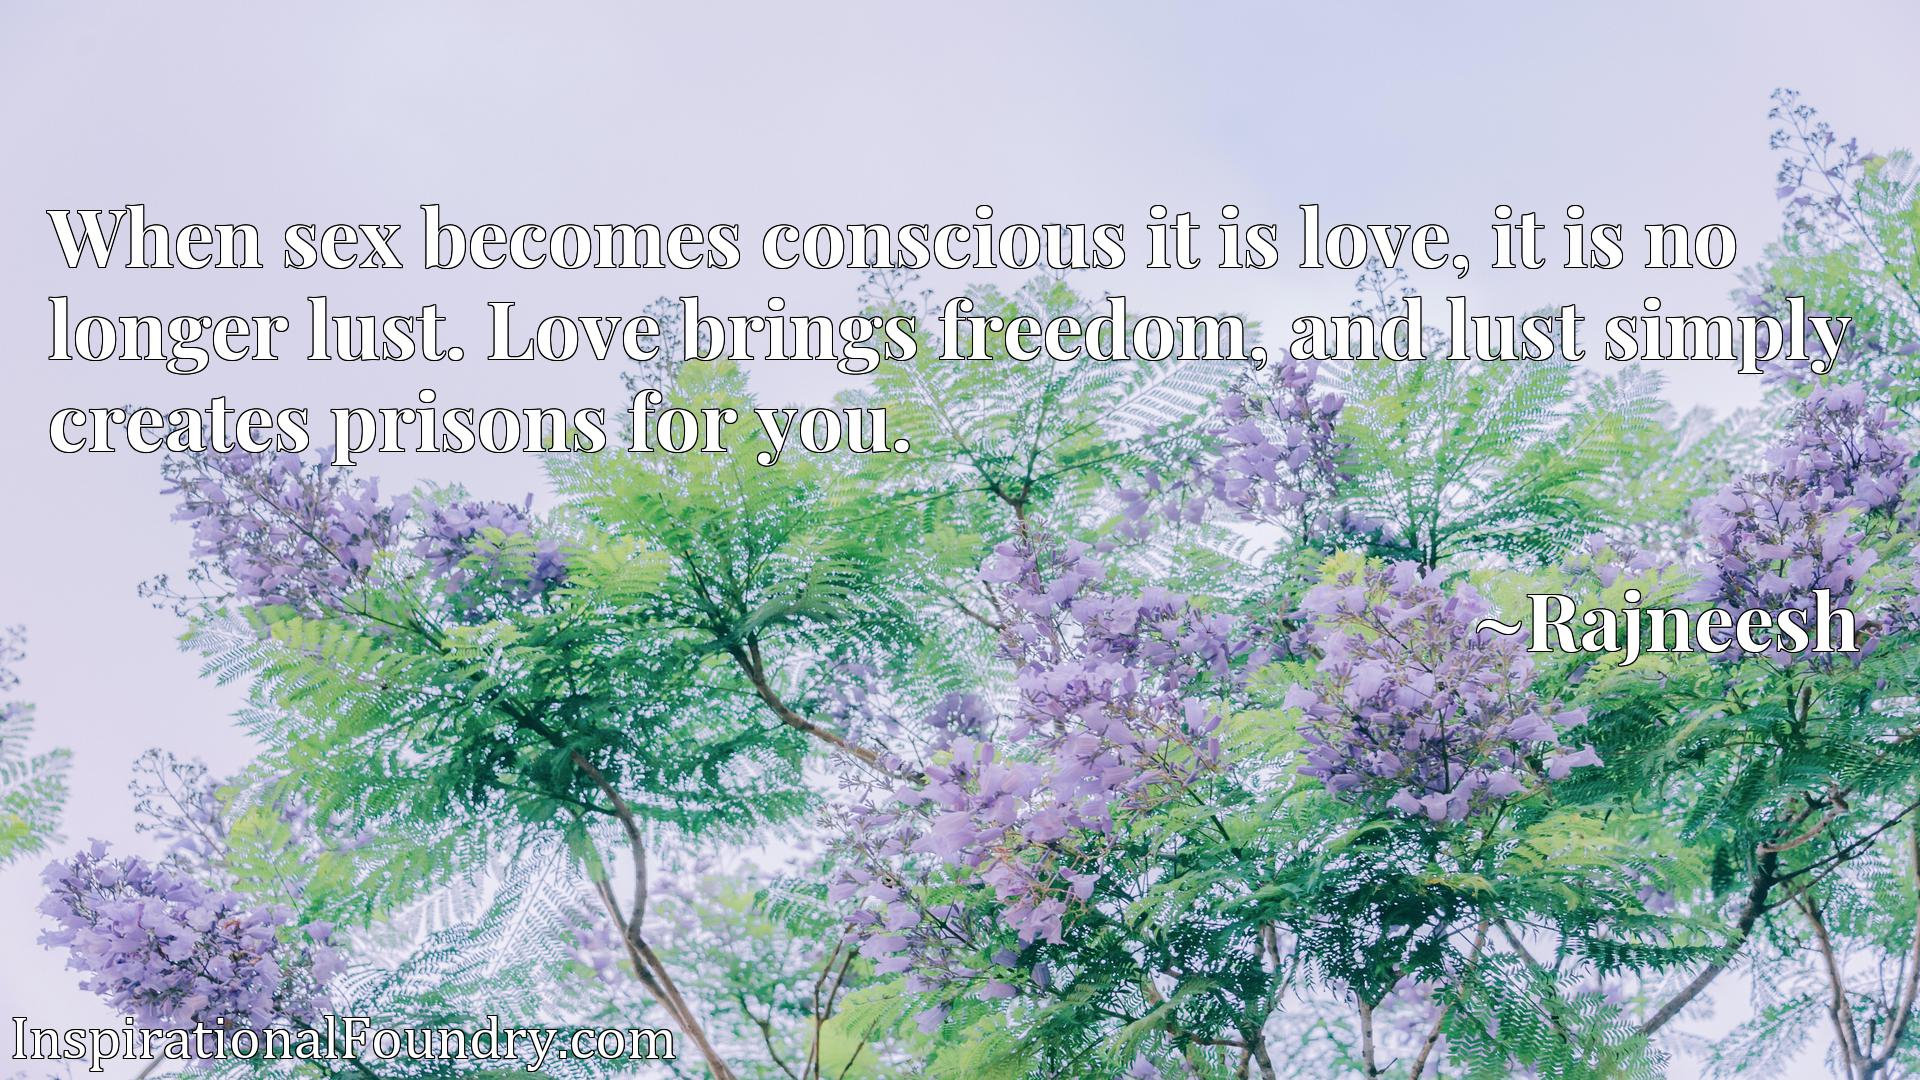 When sex becomes conscious it is love, it is no longer lust. Love brings freedom, and lust simply creates prisons for you.